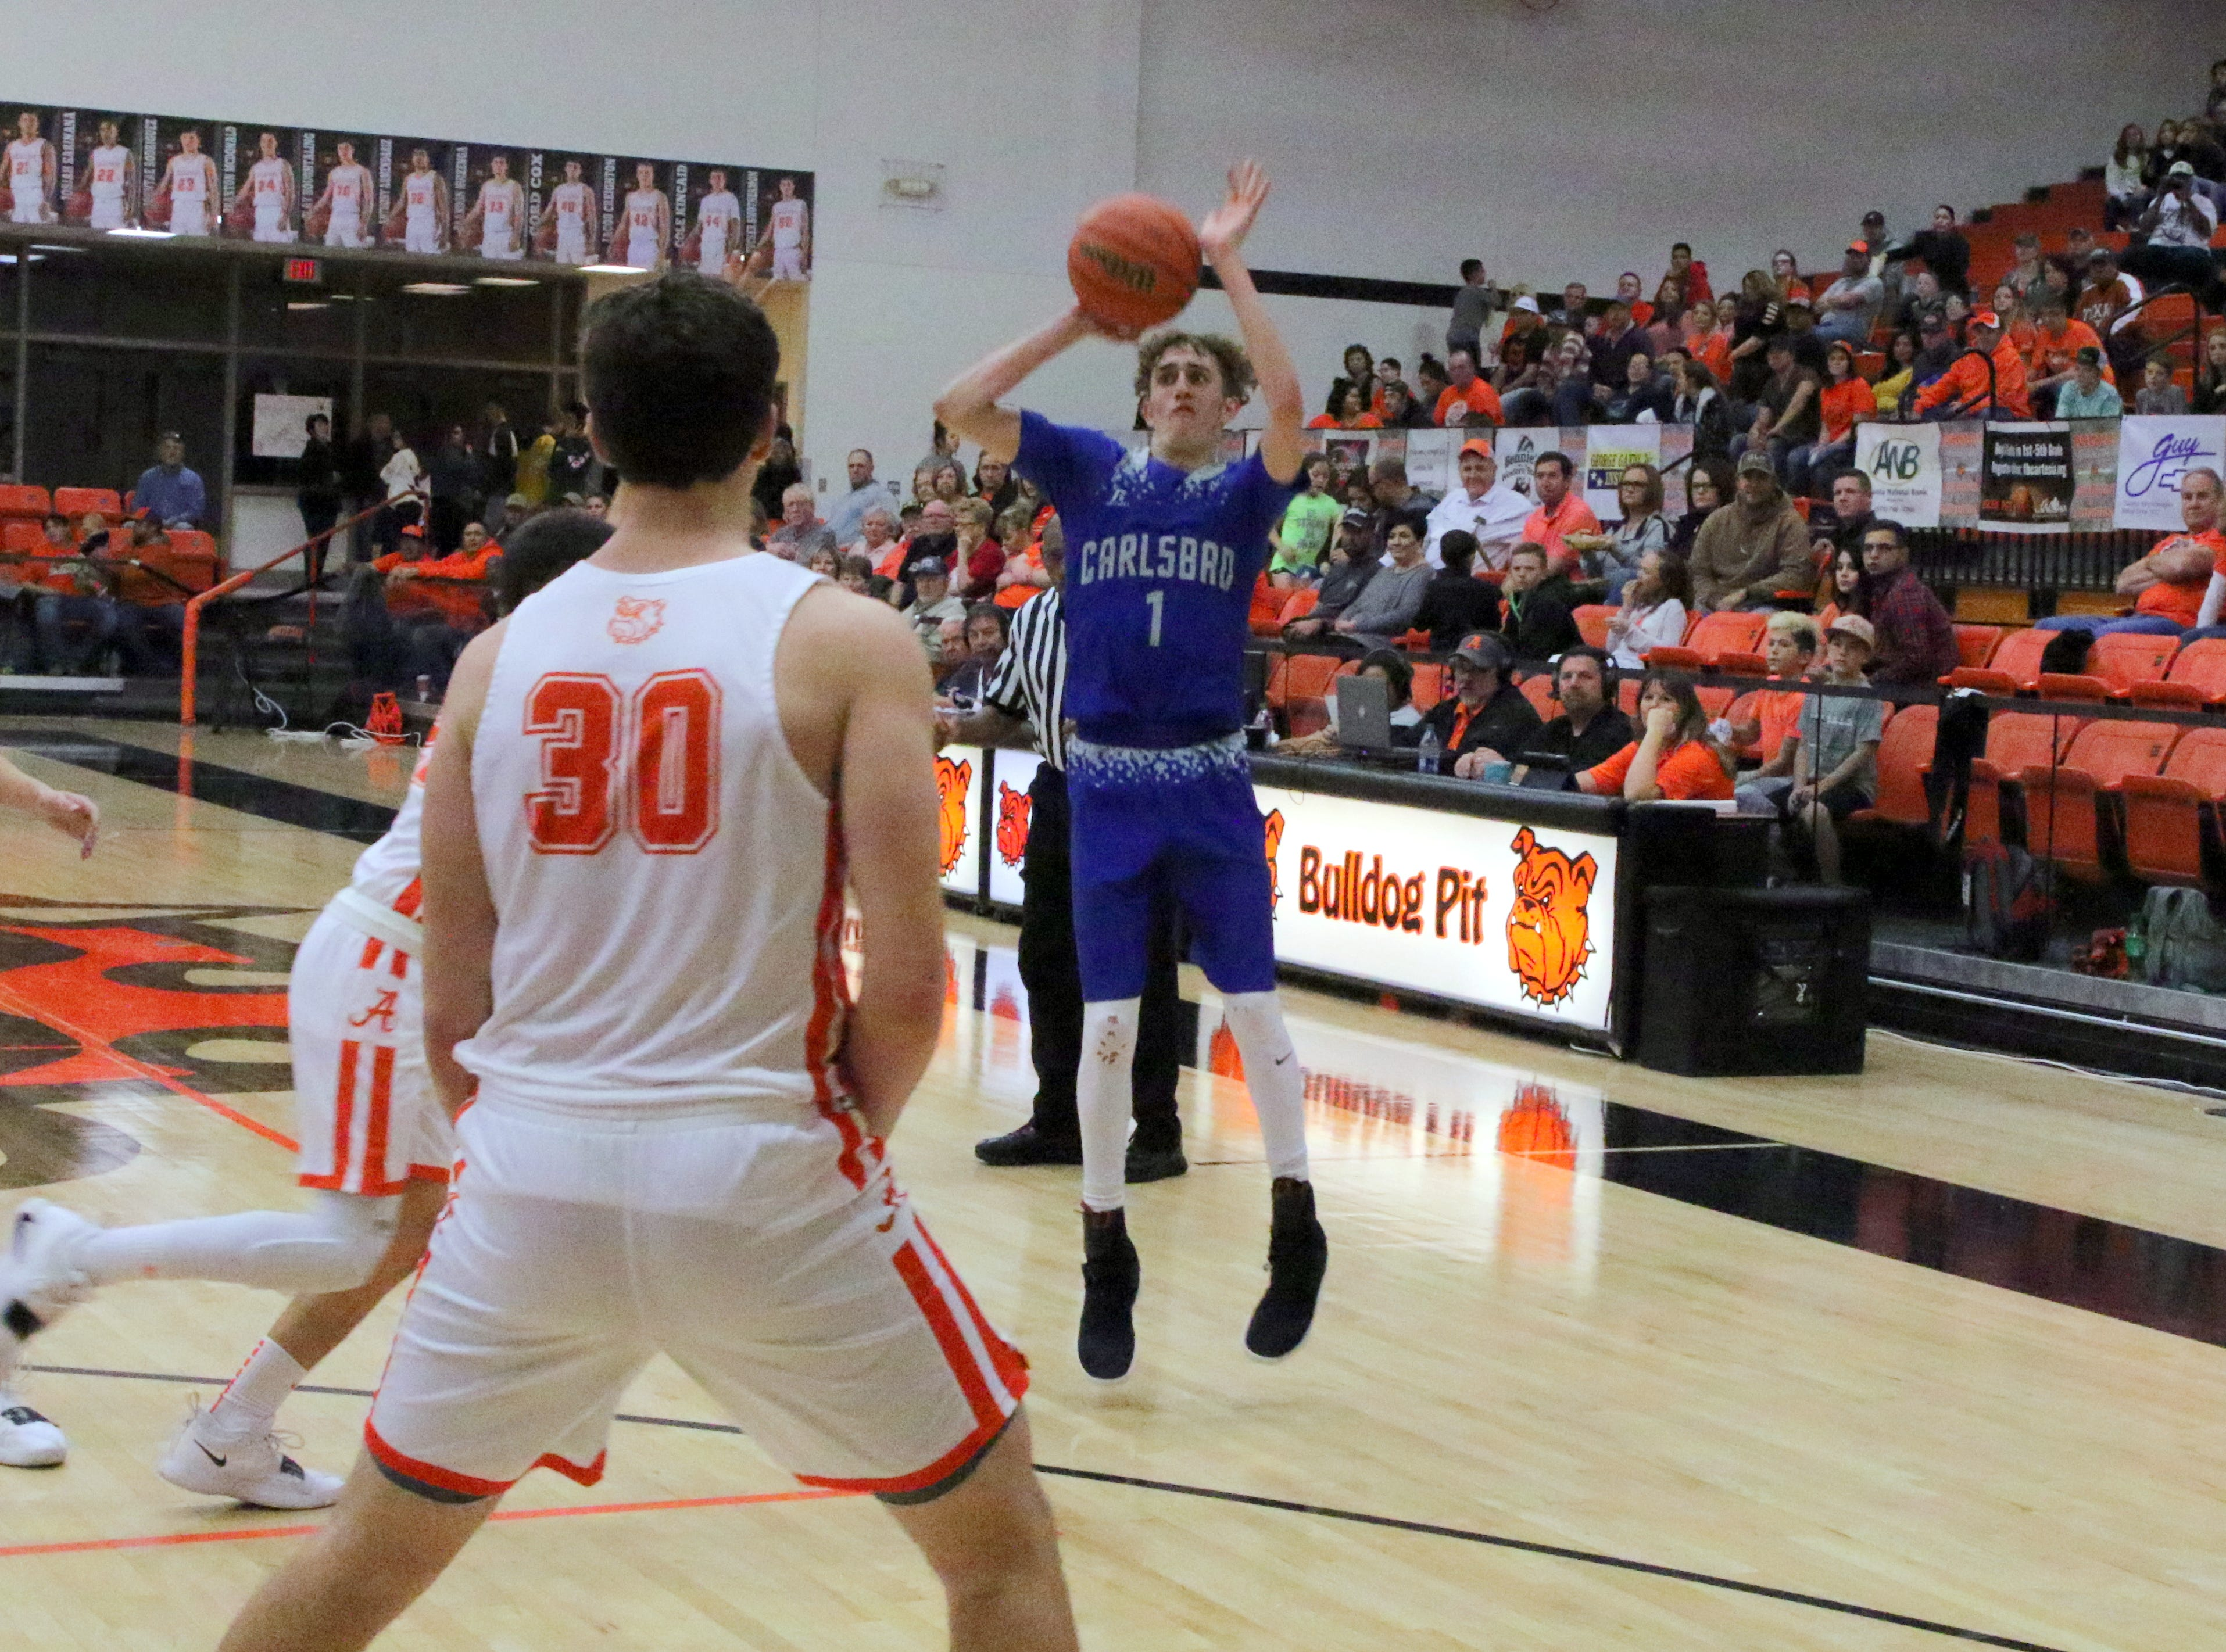 Josh Sillas shoots a 3-pointer in the first quarter of Friday's game against Artesia. Sillas made eight 3-pointers in the game to set a new single-season school record for most made triples. He currently has 59. Carlsbad swept the season series with a 59-56 win.